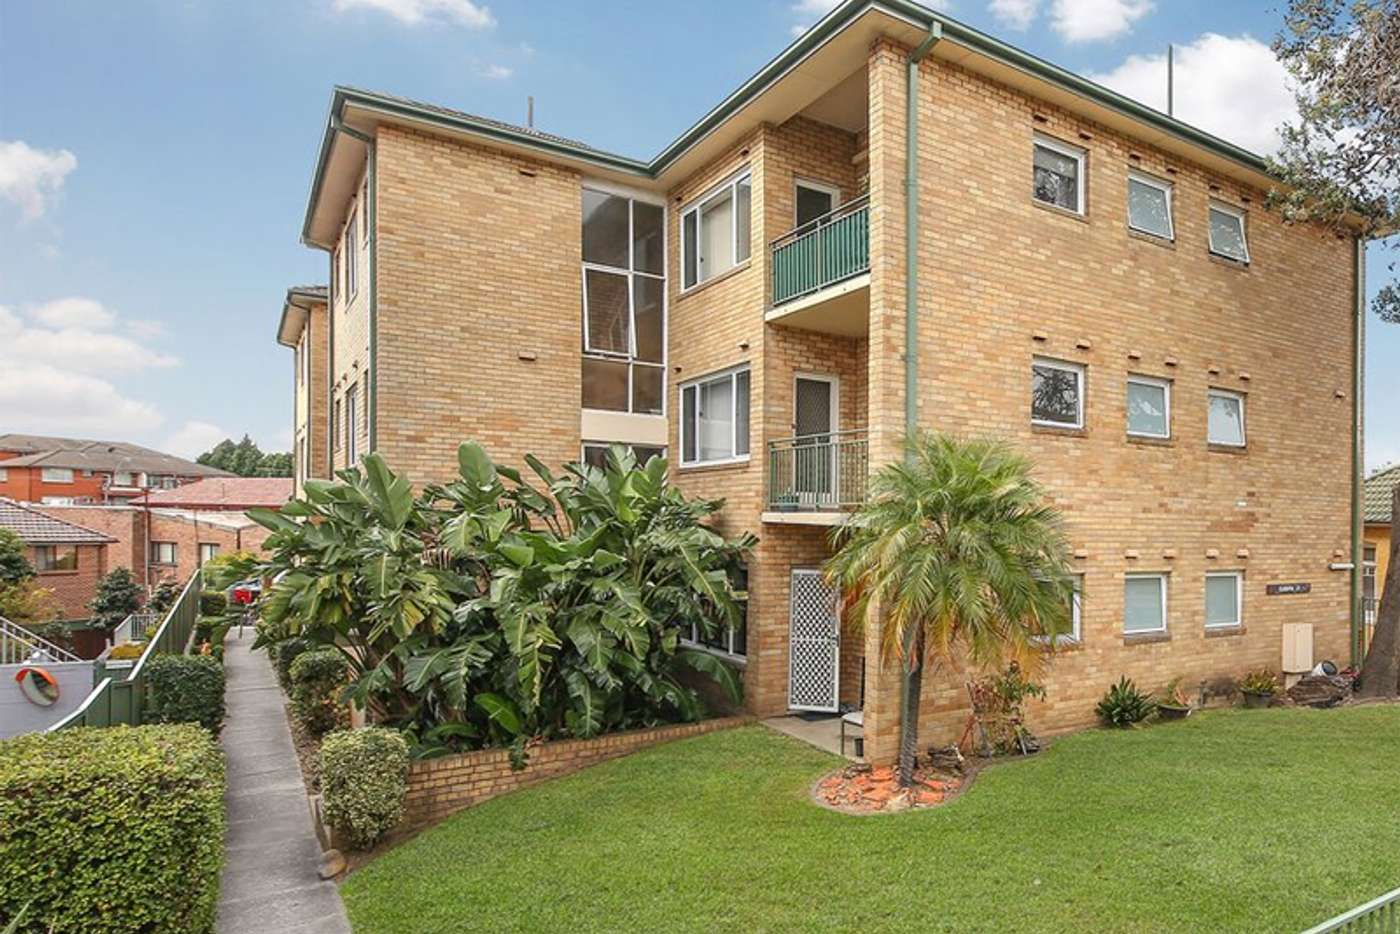 Sixth view of Homely apartment listing, 25 King Edward Street, Rockdale NSW 2216